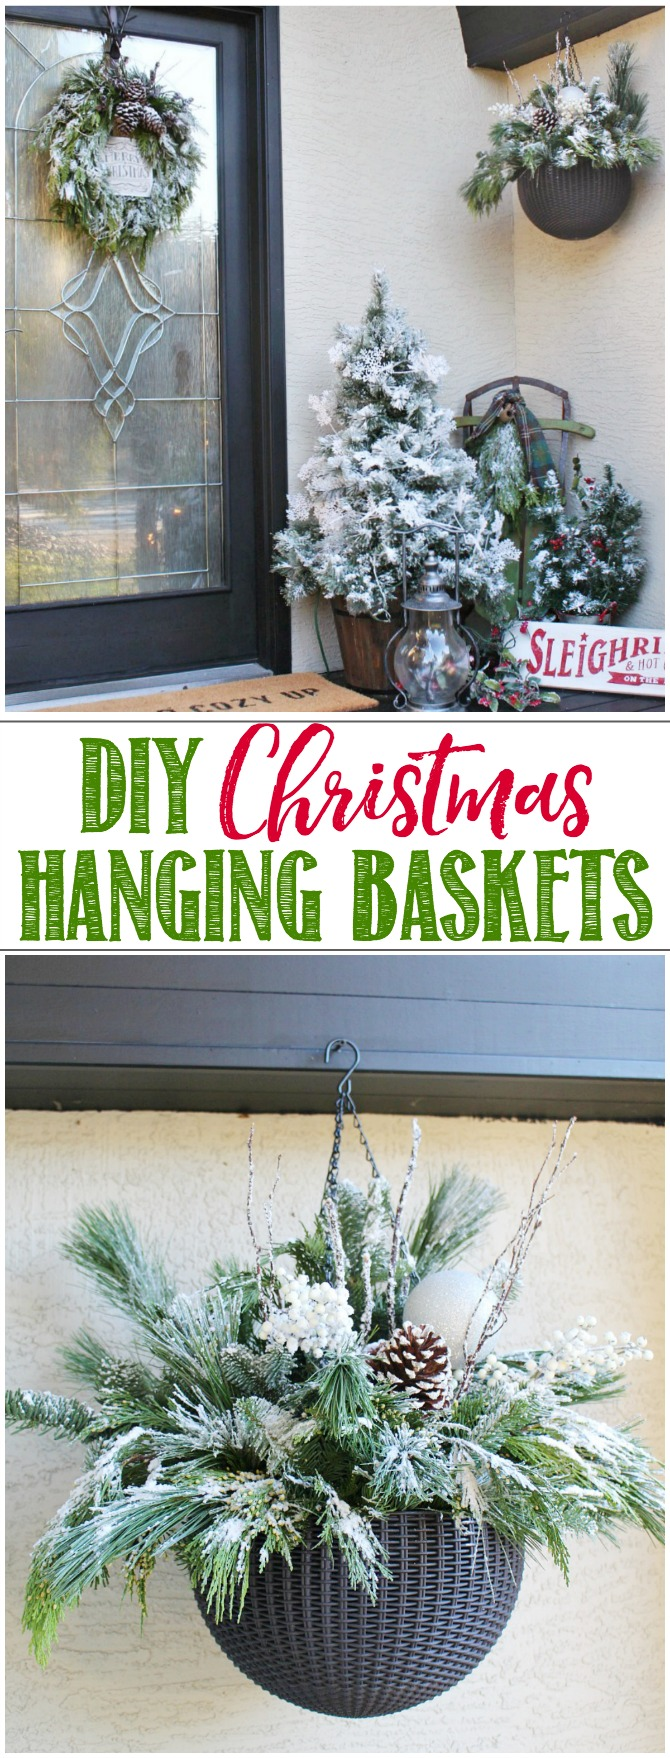 Quick and easy DIY outdoor hanging baskets. A mix of fresh greenery, pinecones,